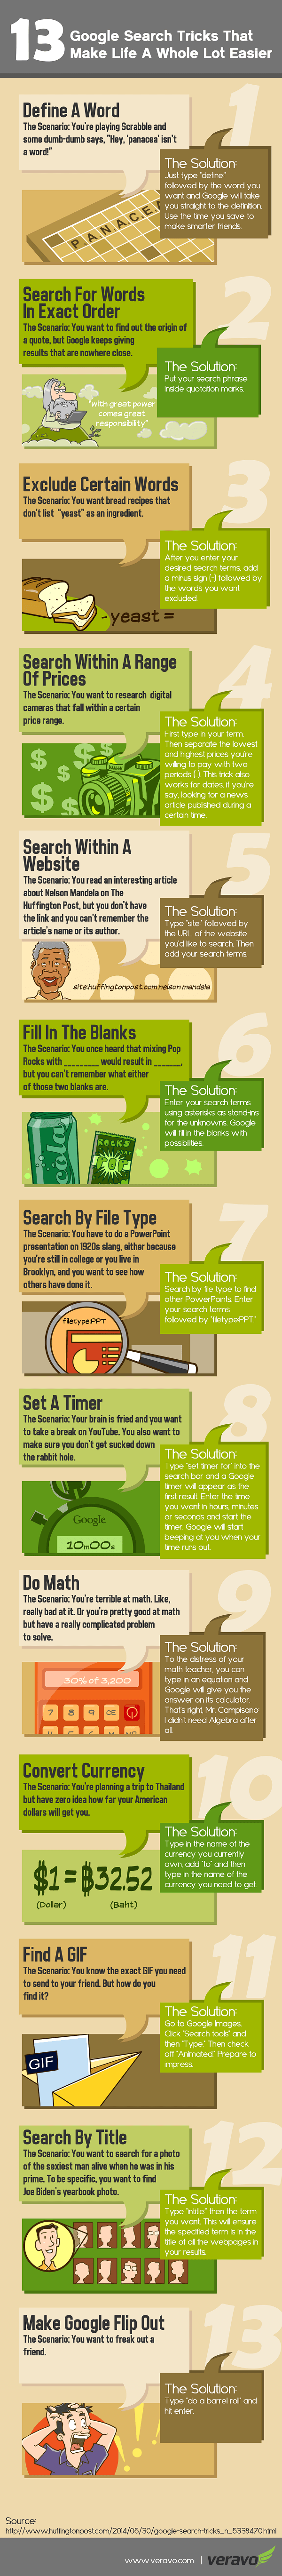 Google Search Tricks Infographic